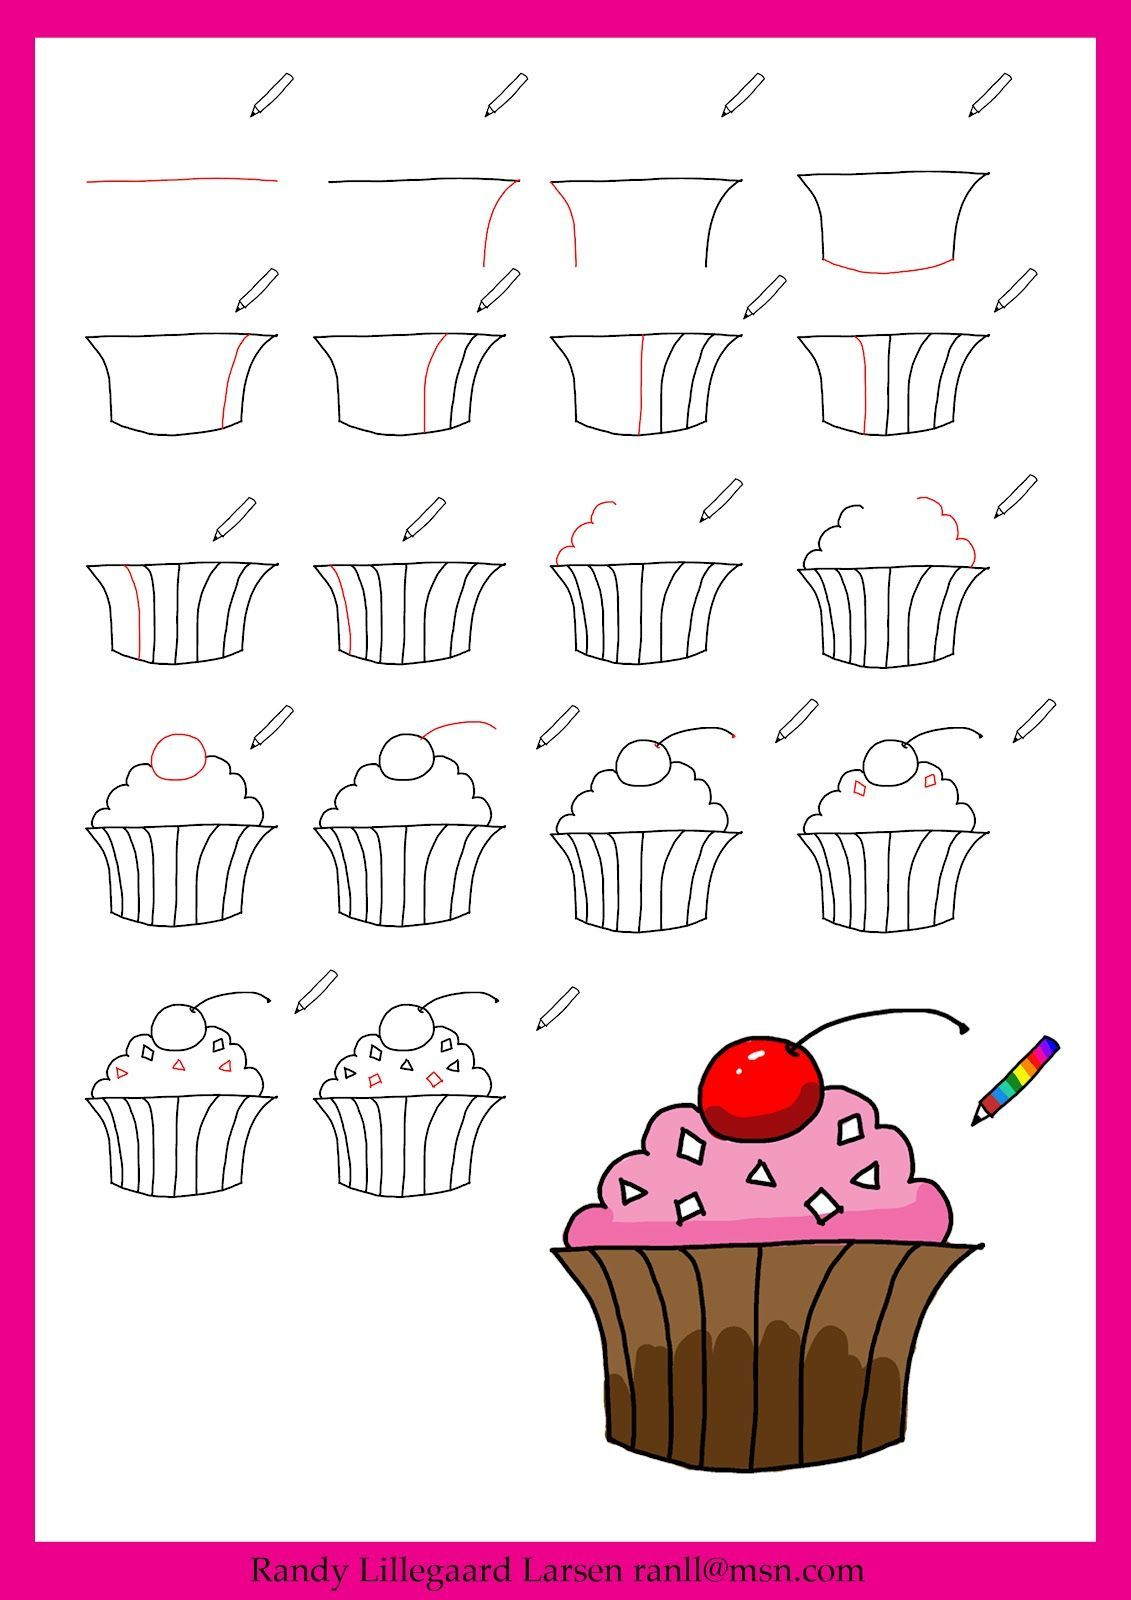 How To Draw A Cup Cake Wayne Theibauld With Images